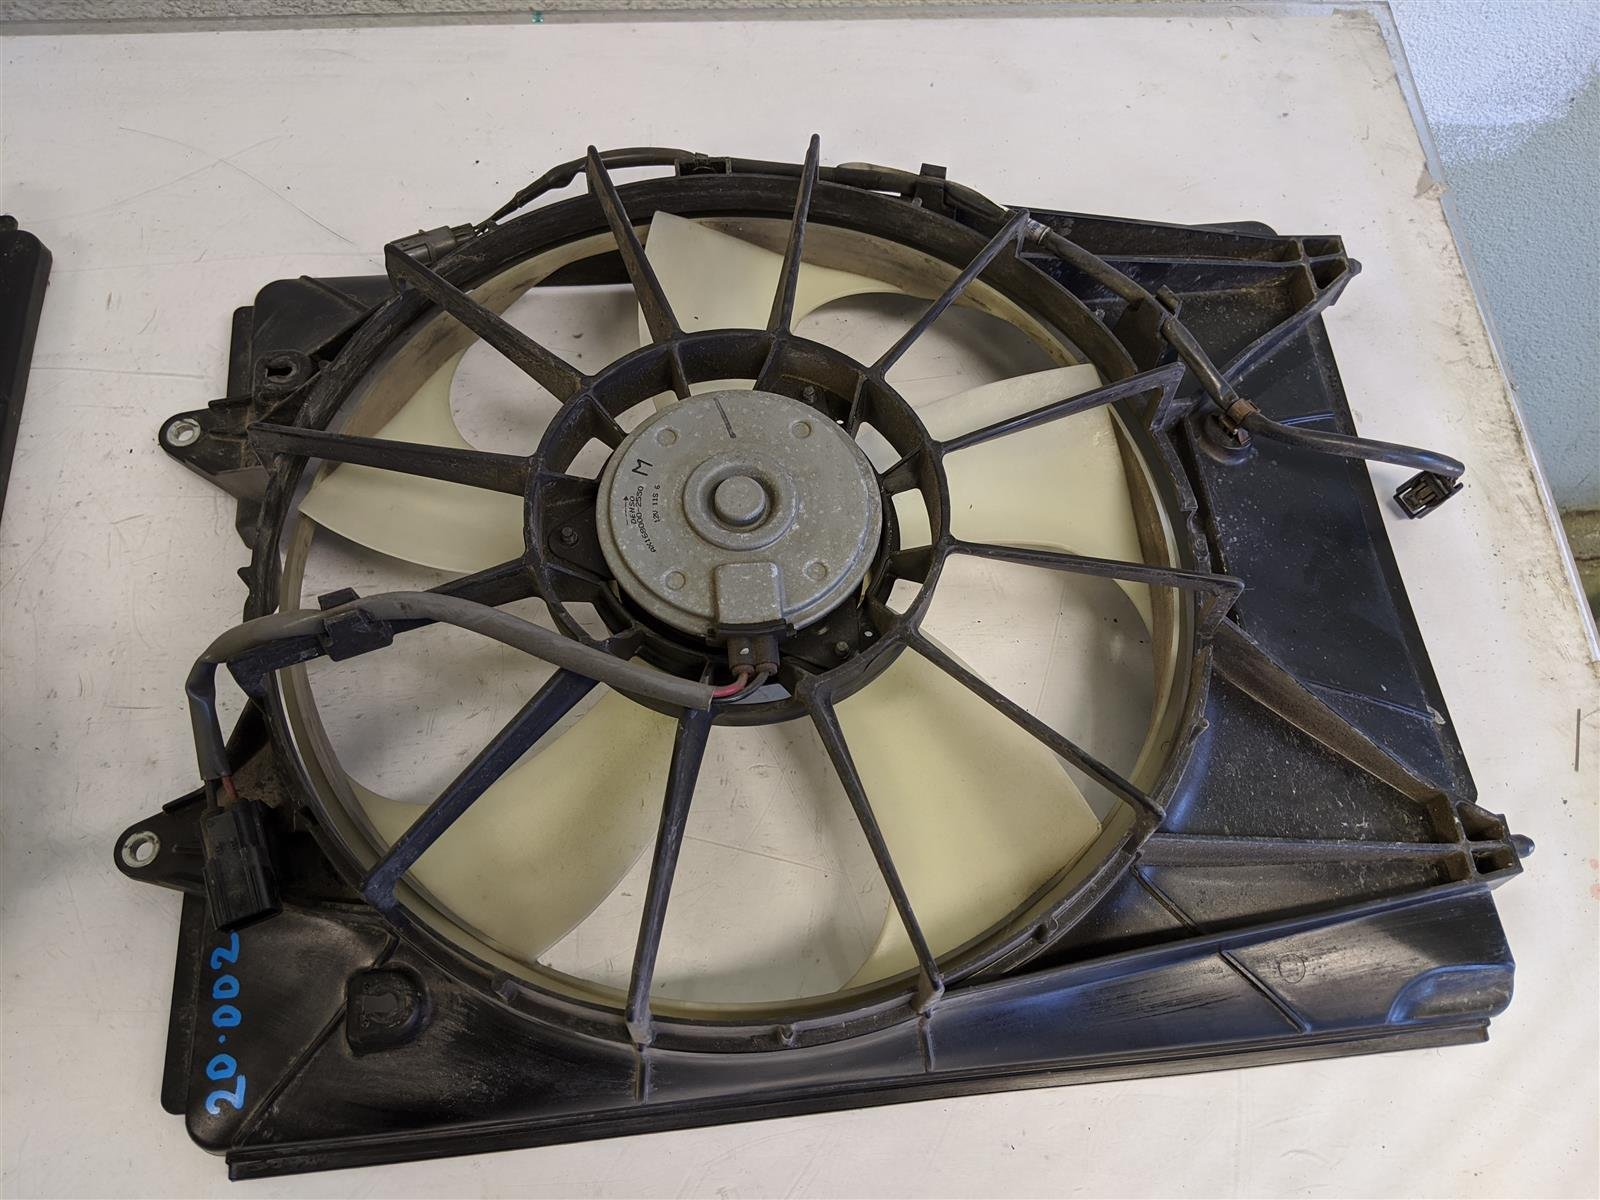 2016 Acura MDX Radiator Fan Assembly Replacement